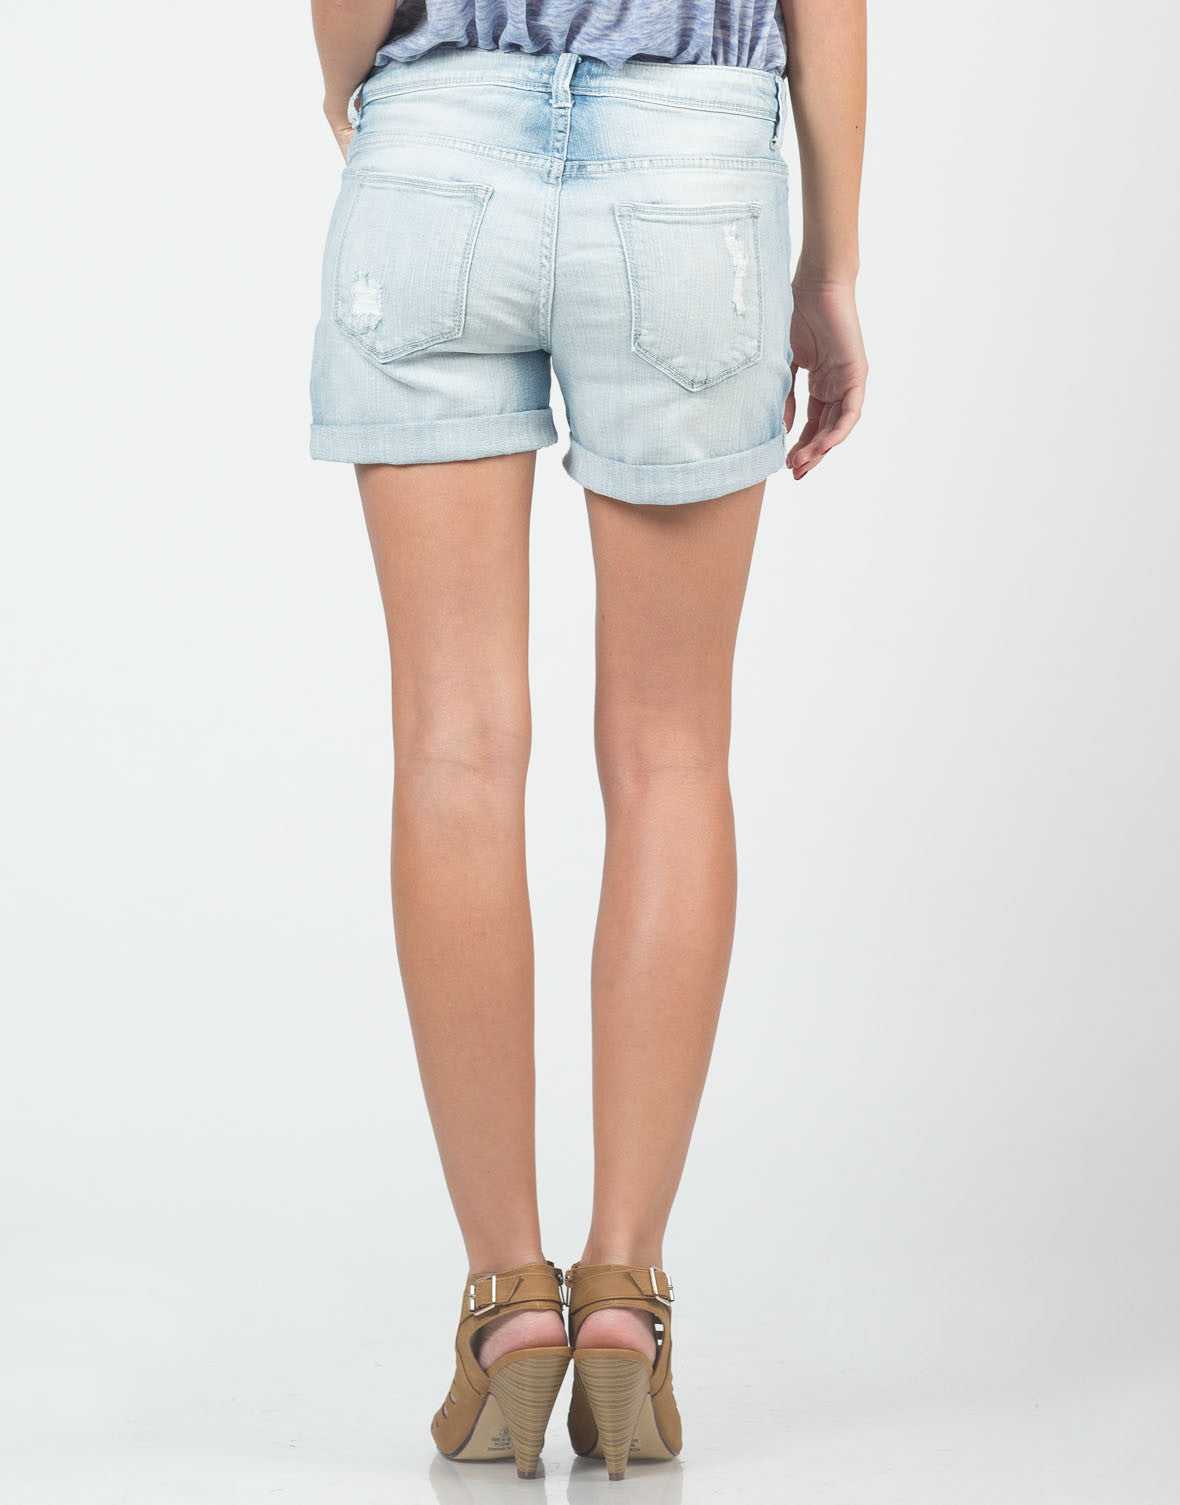 Back View of Relaxed Boyfriend Denim Shorts